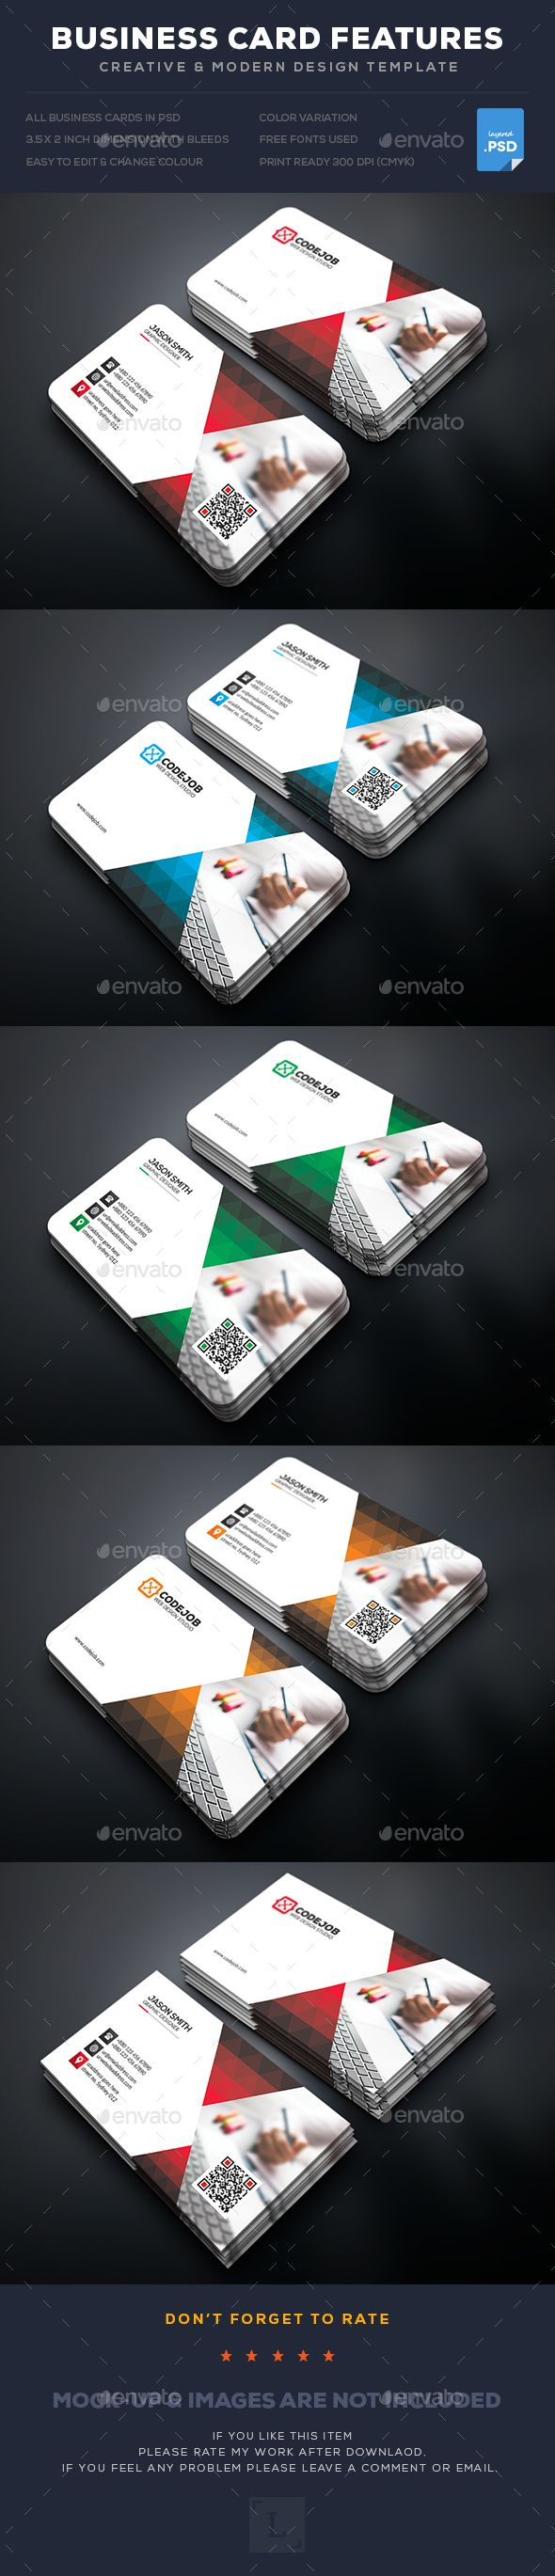 Shade corporate business card corporate business business cards buy shade corporate business card by uxcred on graphicriver features easy customizable and editable business card in with bleed cmyk color design in 300 reheart Gallery